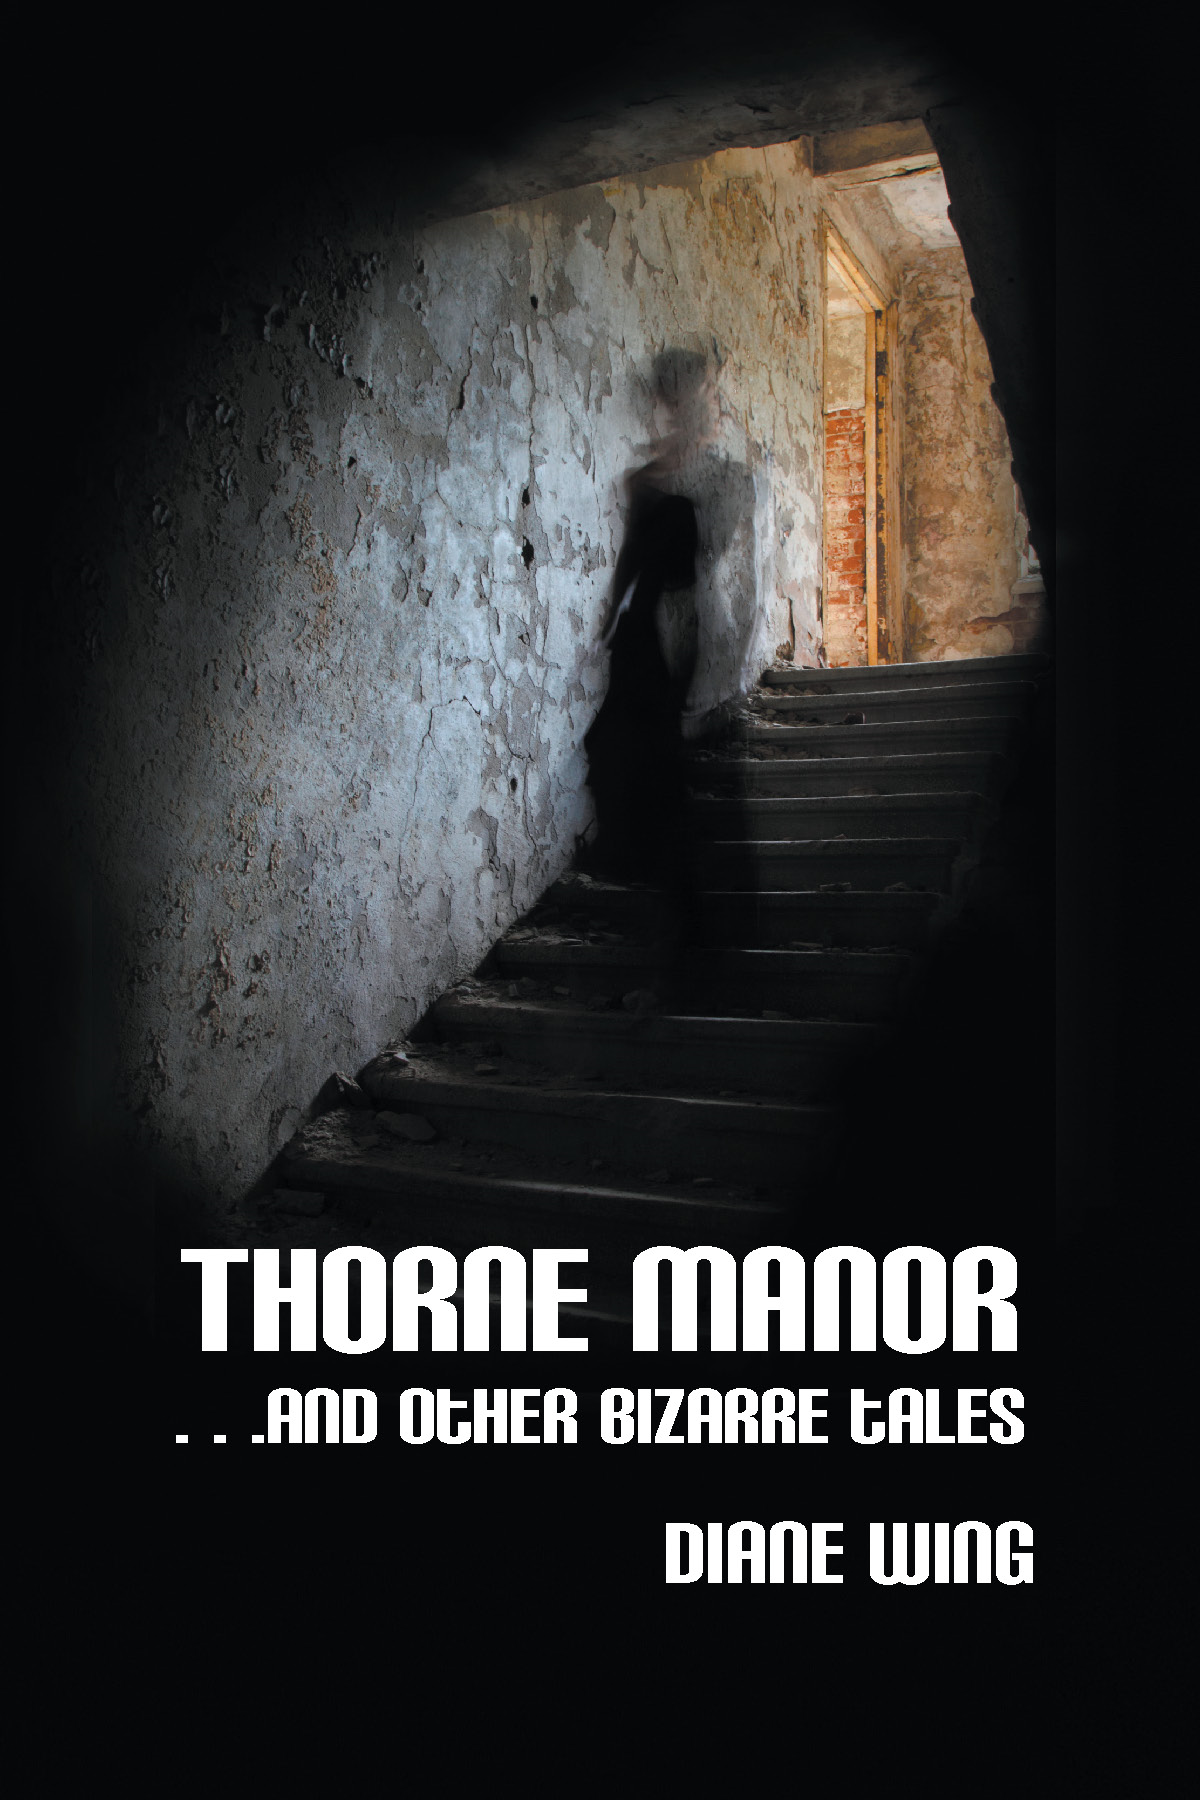 Thorne Manor By: Diane Wing